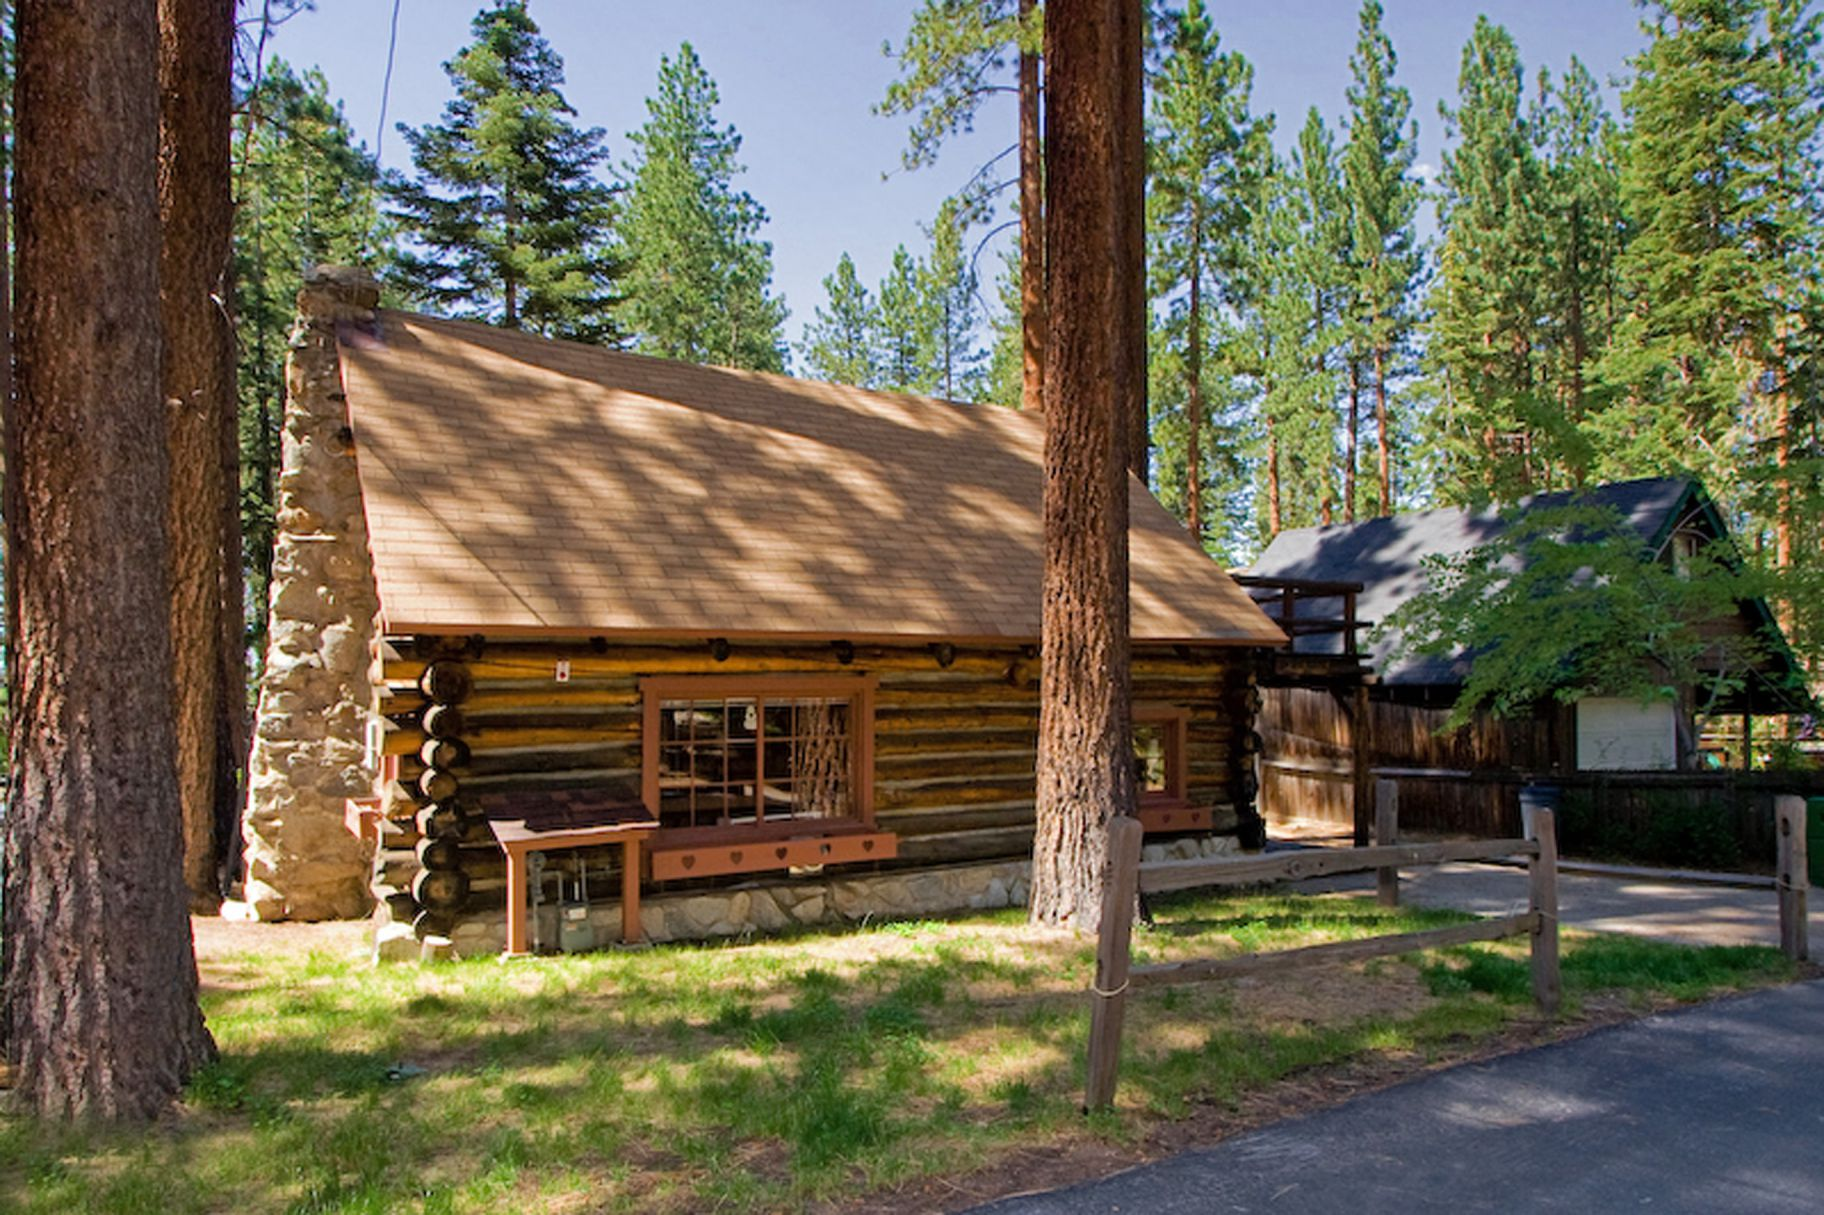 Lake Tahoe log cabin | Small House Bliss on swedish cottage home plans, log home floor plans, russian log home plans, barn home plans, log home plans and, log home building plans, sod roof home plans, high quality small home plans, riad home plans, tree house home plans, gordon home plans, log home fences, semi detached home plans, pole building home plans, loft small cabin plans, i-house home plans, modular log home plans, liberty home plans, board & batten home plans,